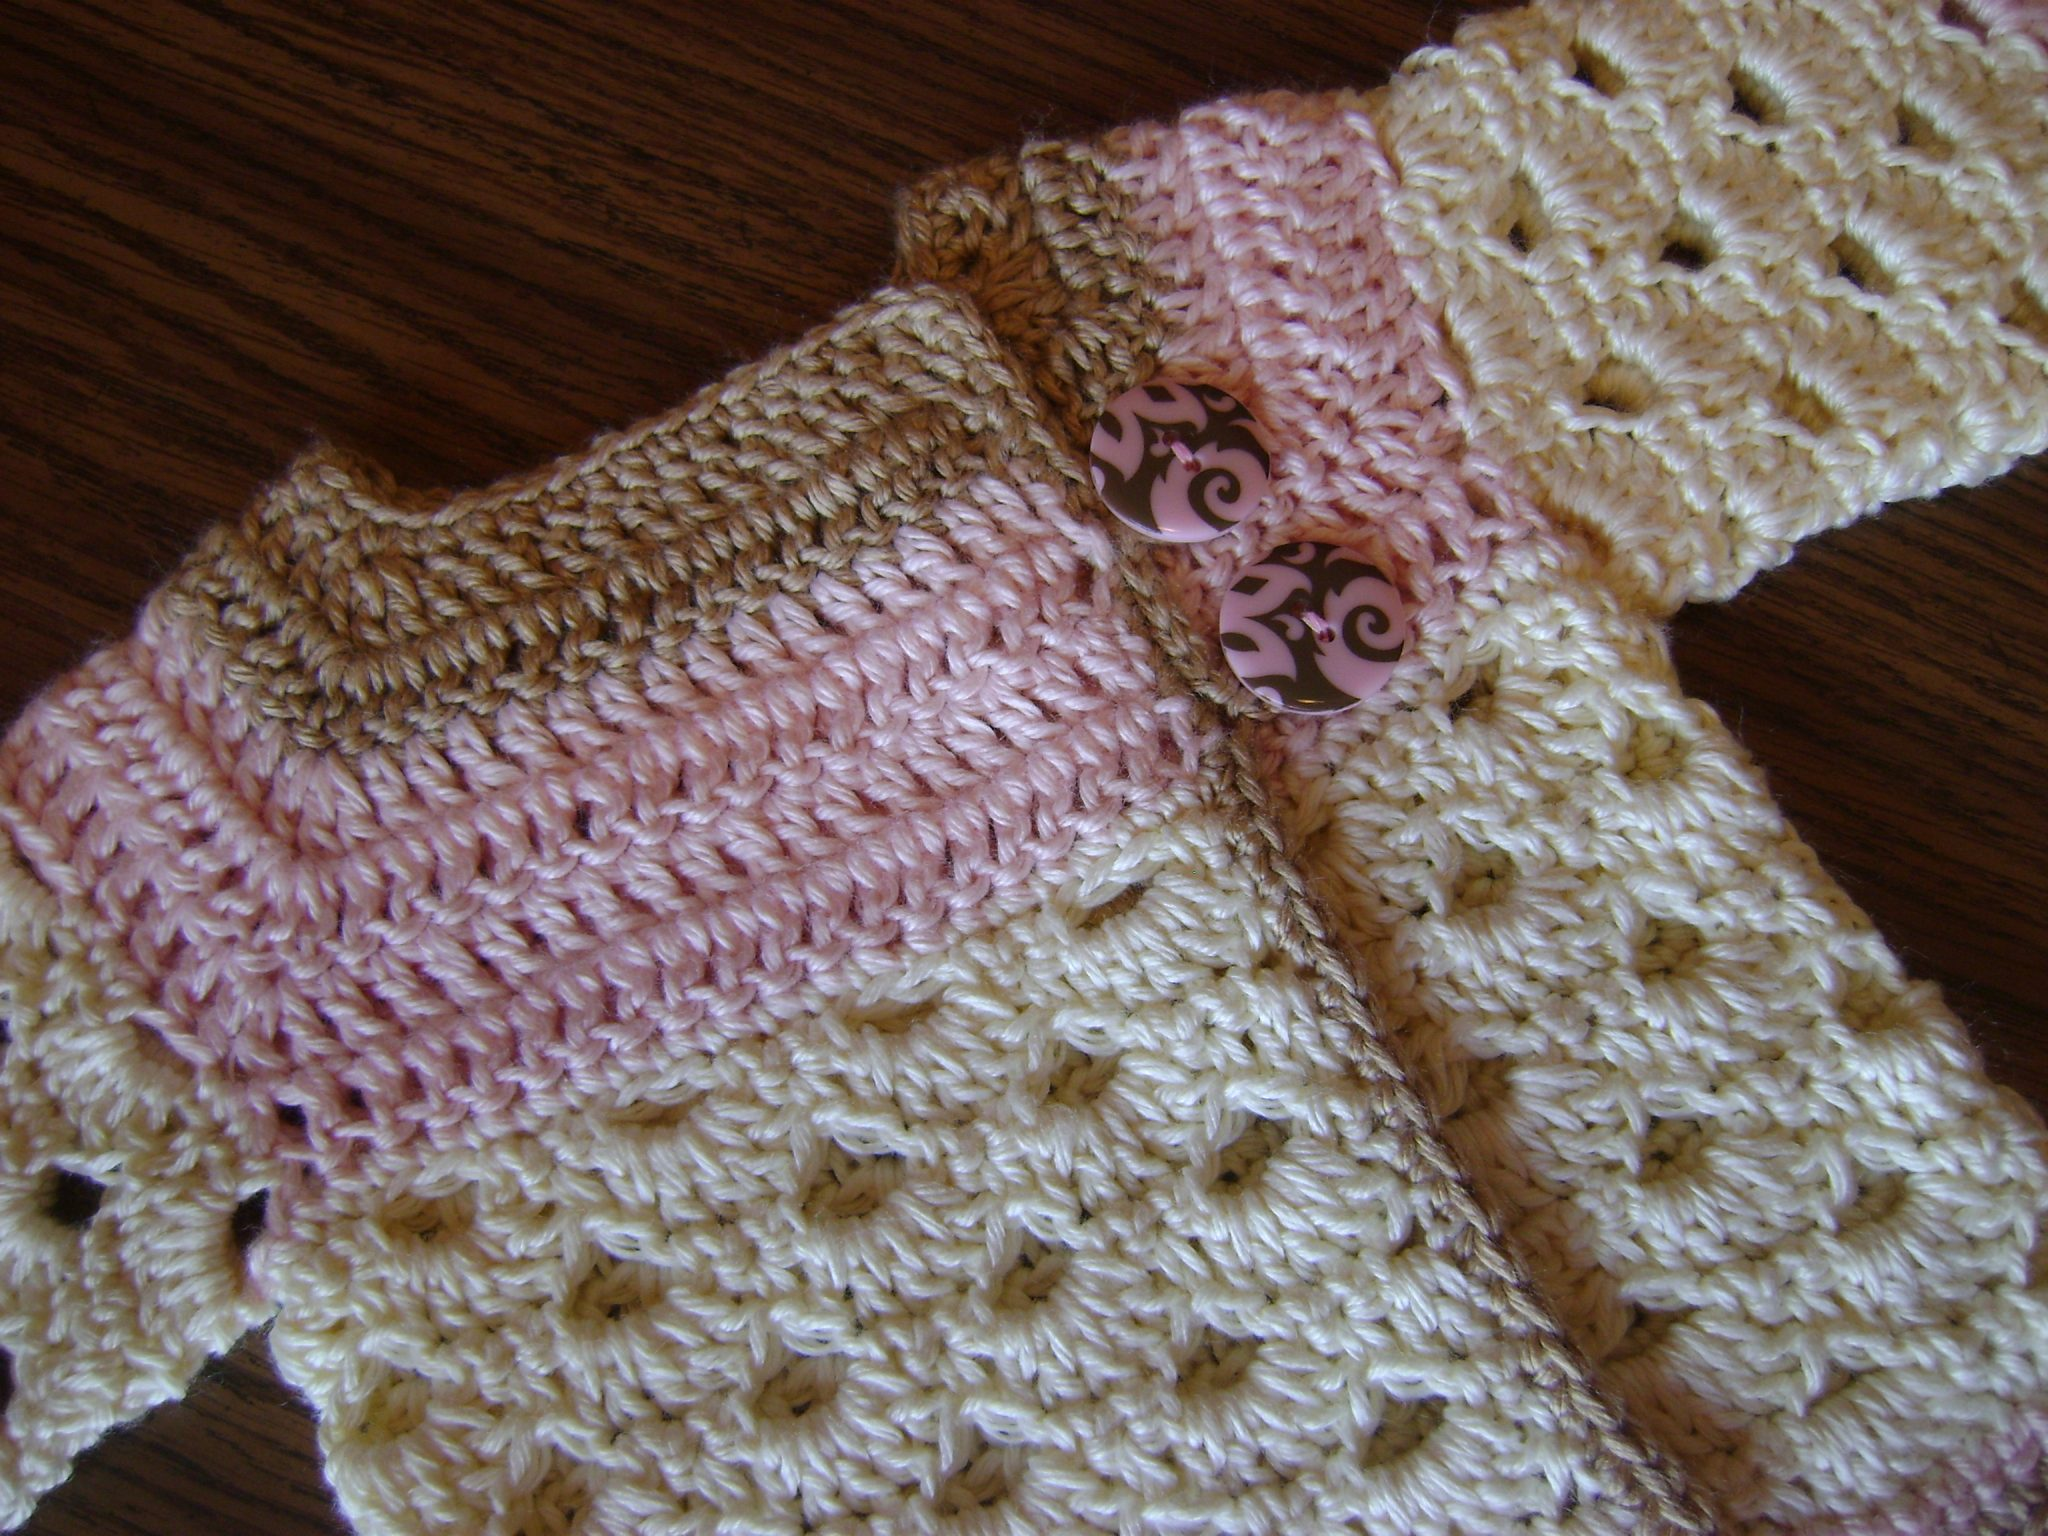 Crochet Newborn Baby Sweater Free Pattern : Free Recipe: Mini Moogly Sweater